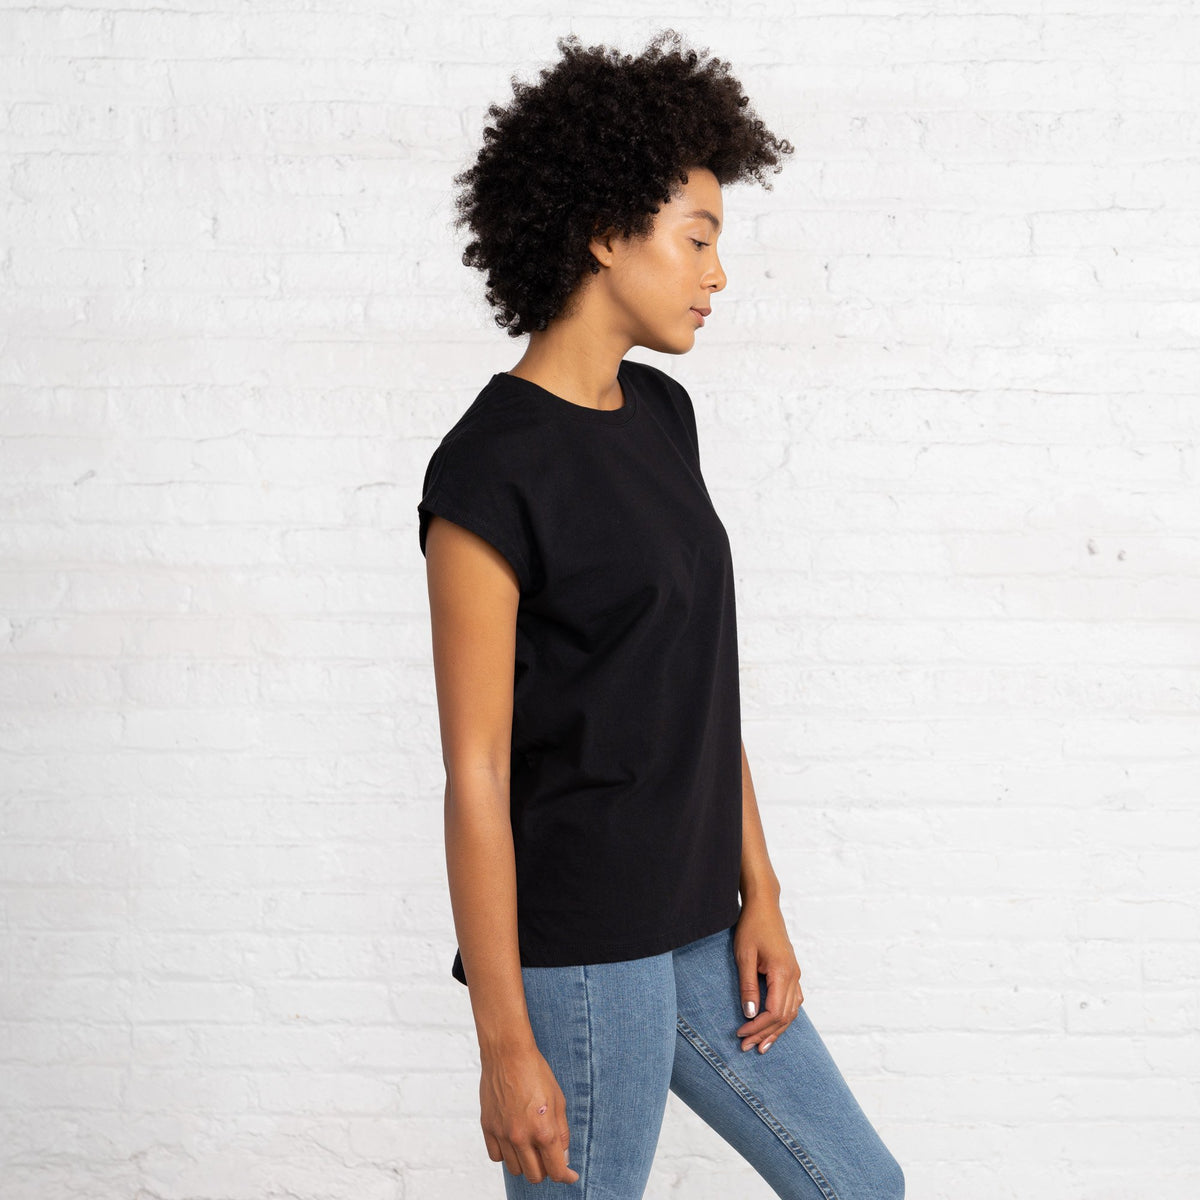 Dolman T Color:Black Combed Cotton New T-shirts Women's T-shirts